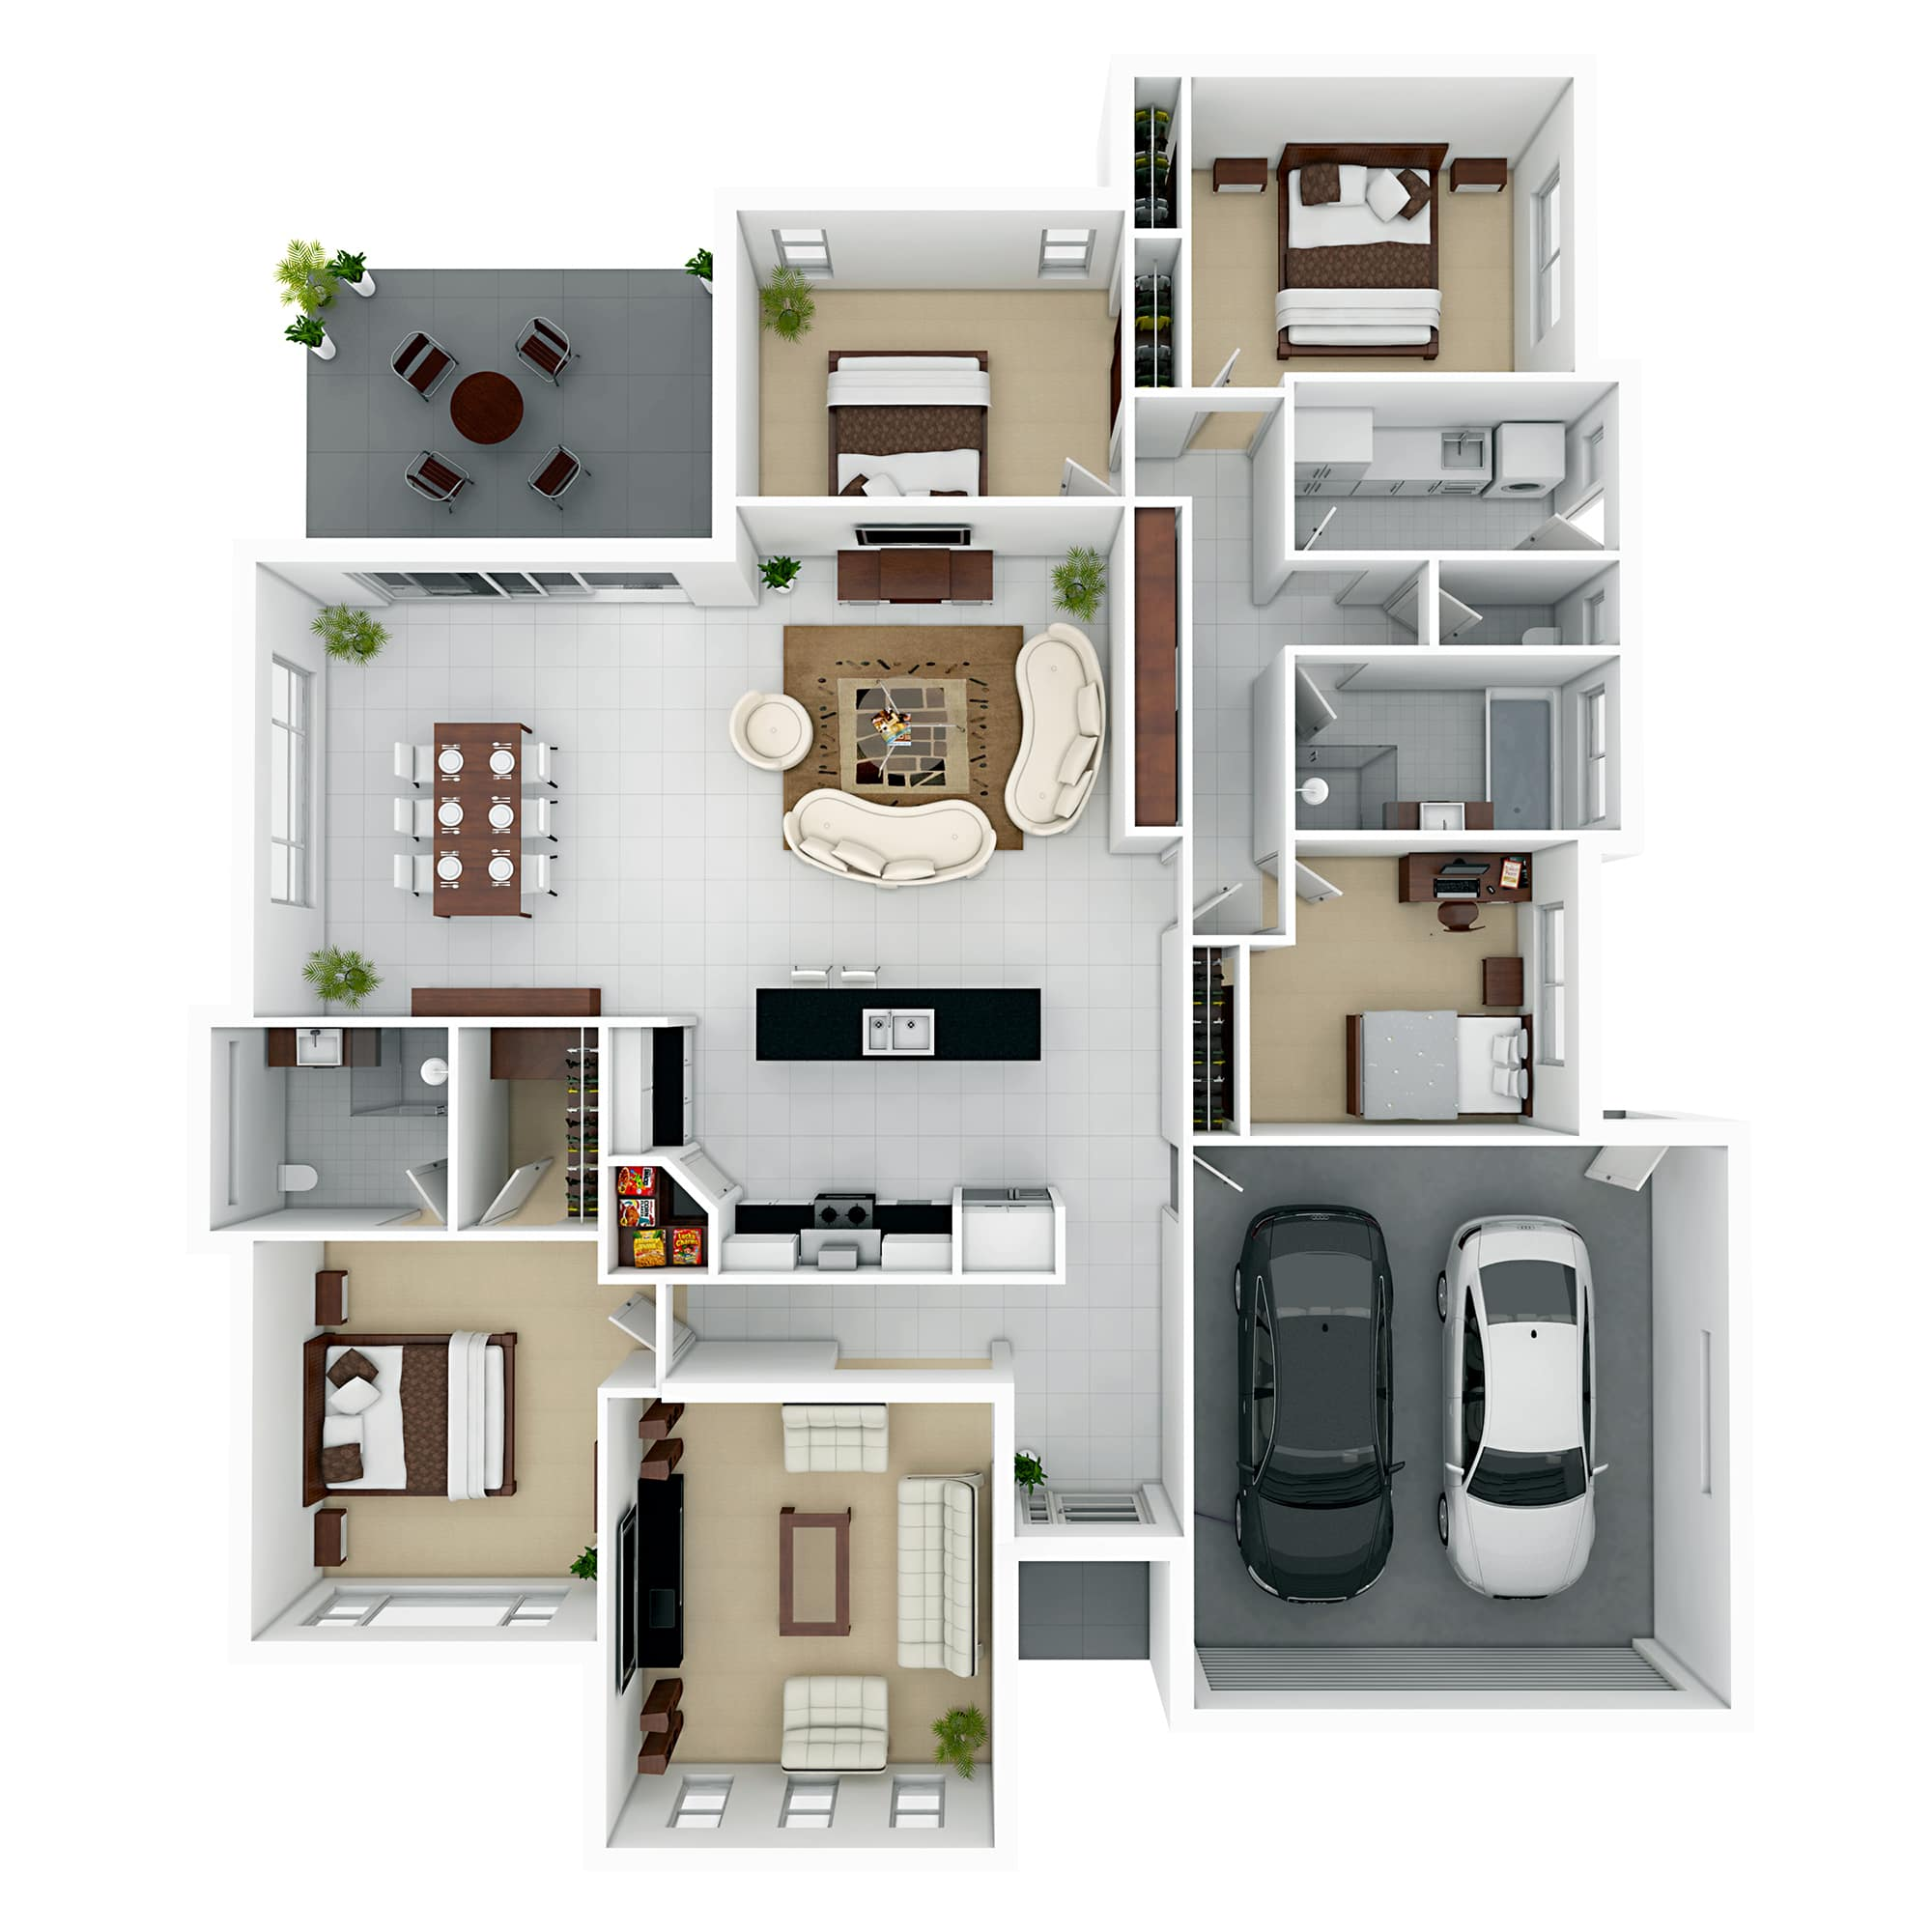 3d floor plans 3d design studio floor plan company for Architecture design house plans 3d